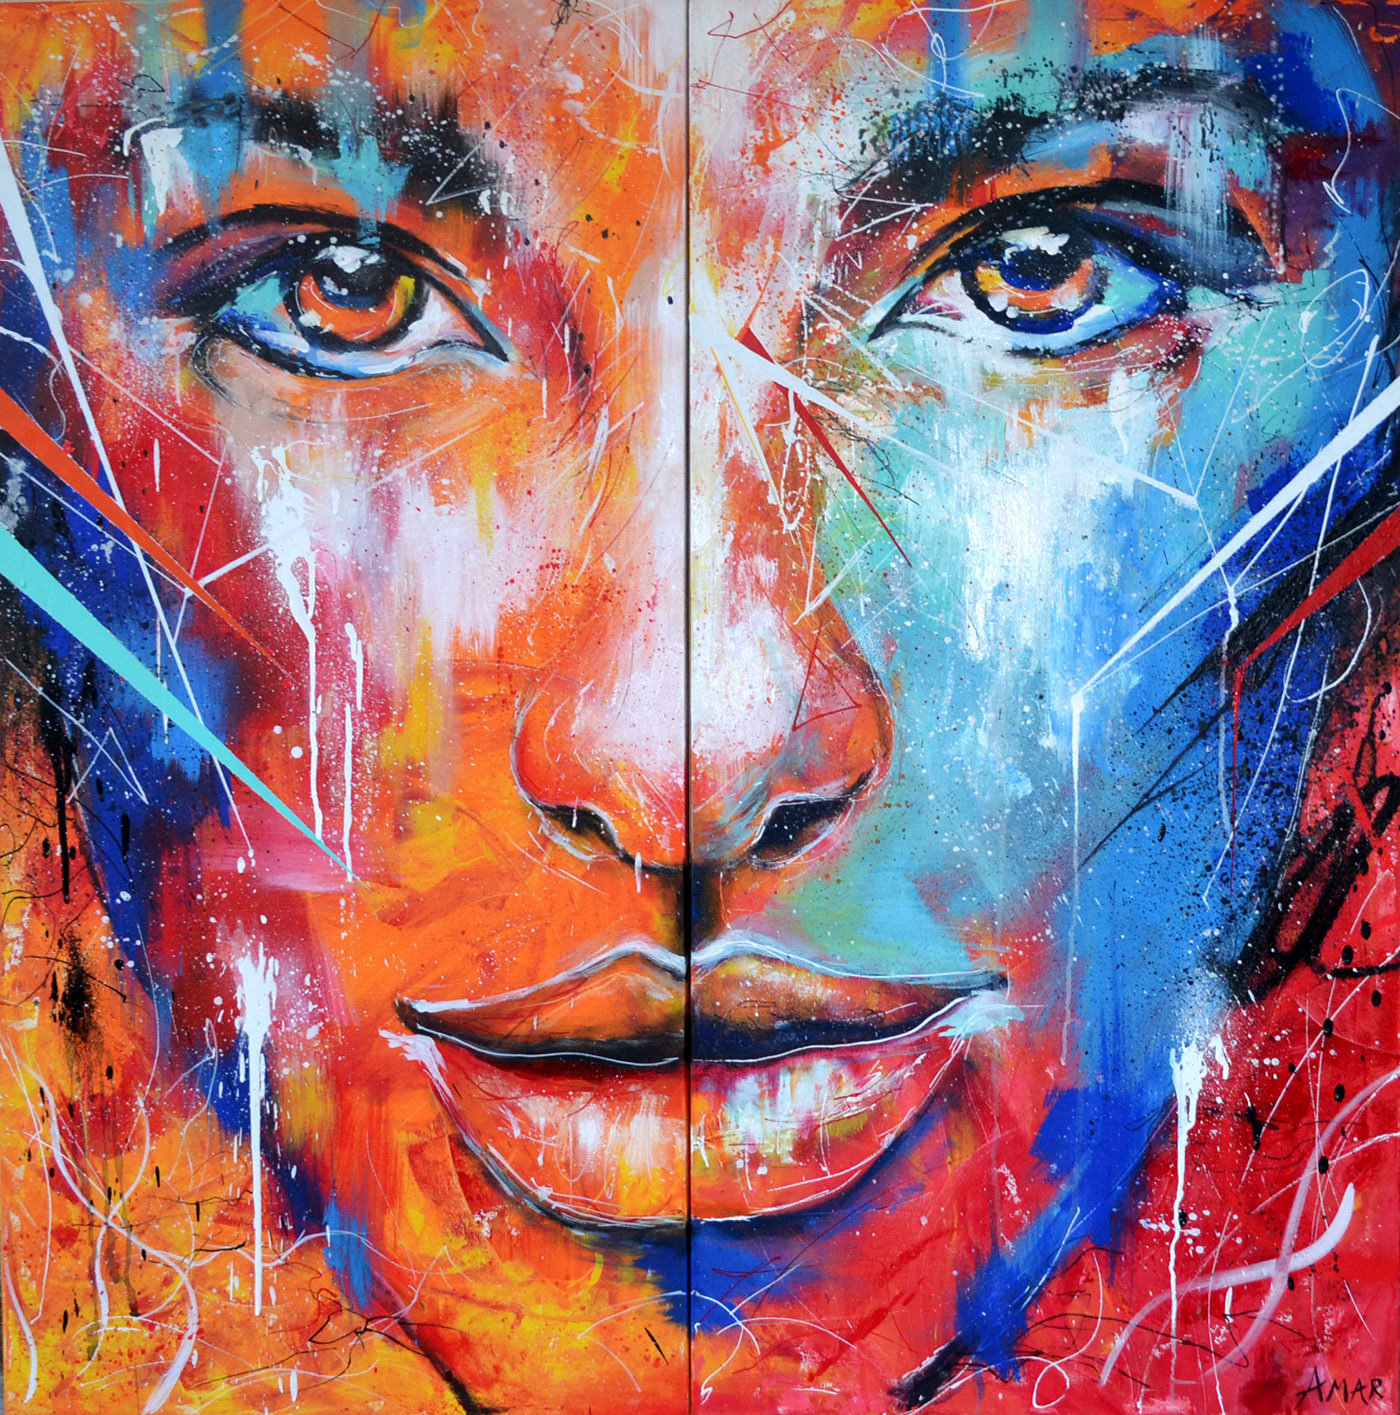 Fire and ice abstract portrait painting on behance for Photos to paint